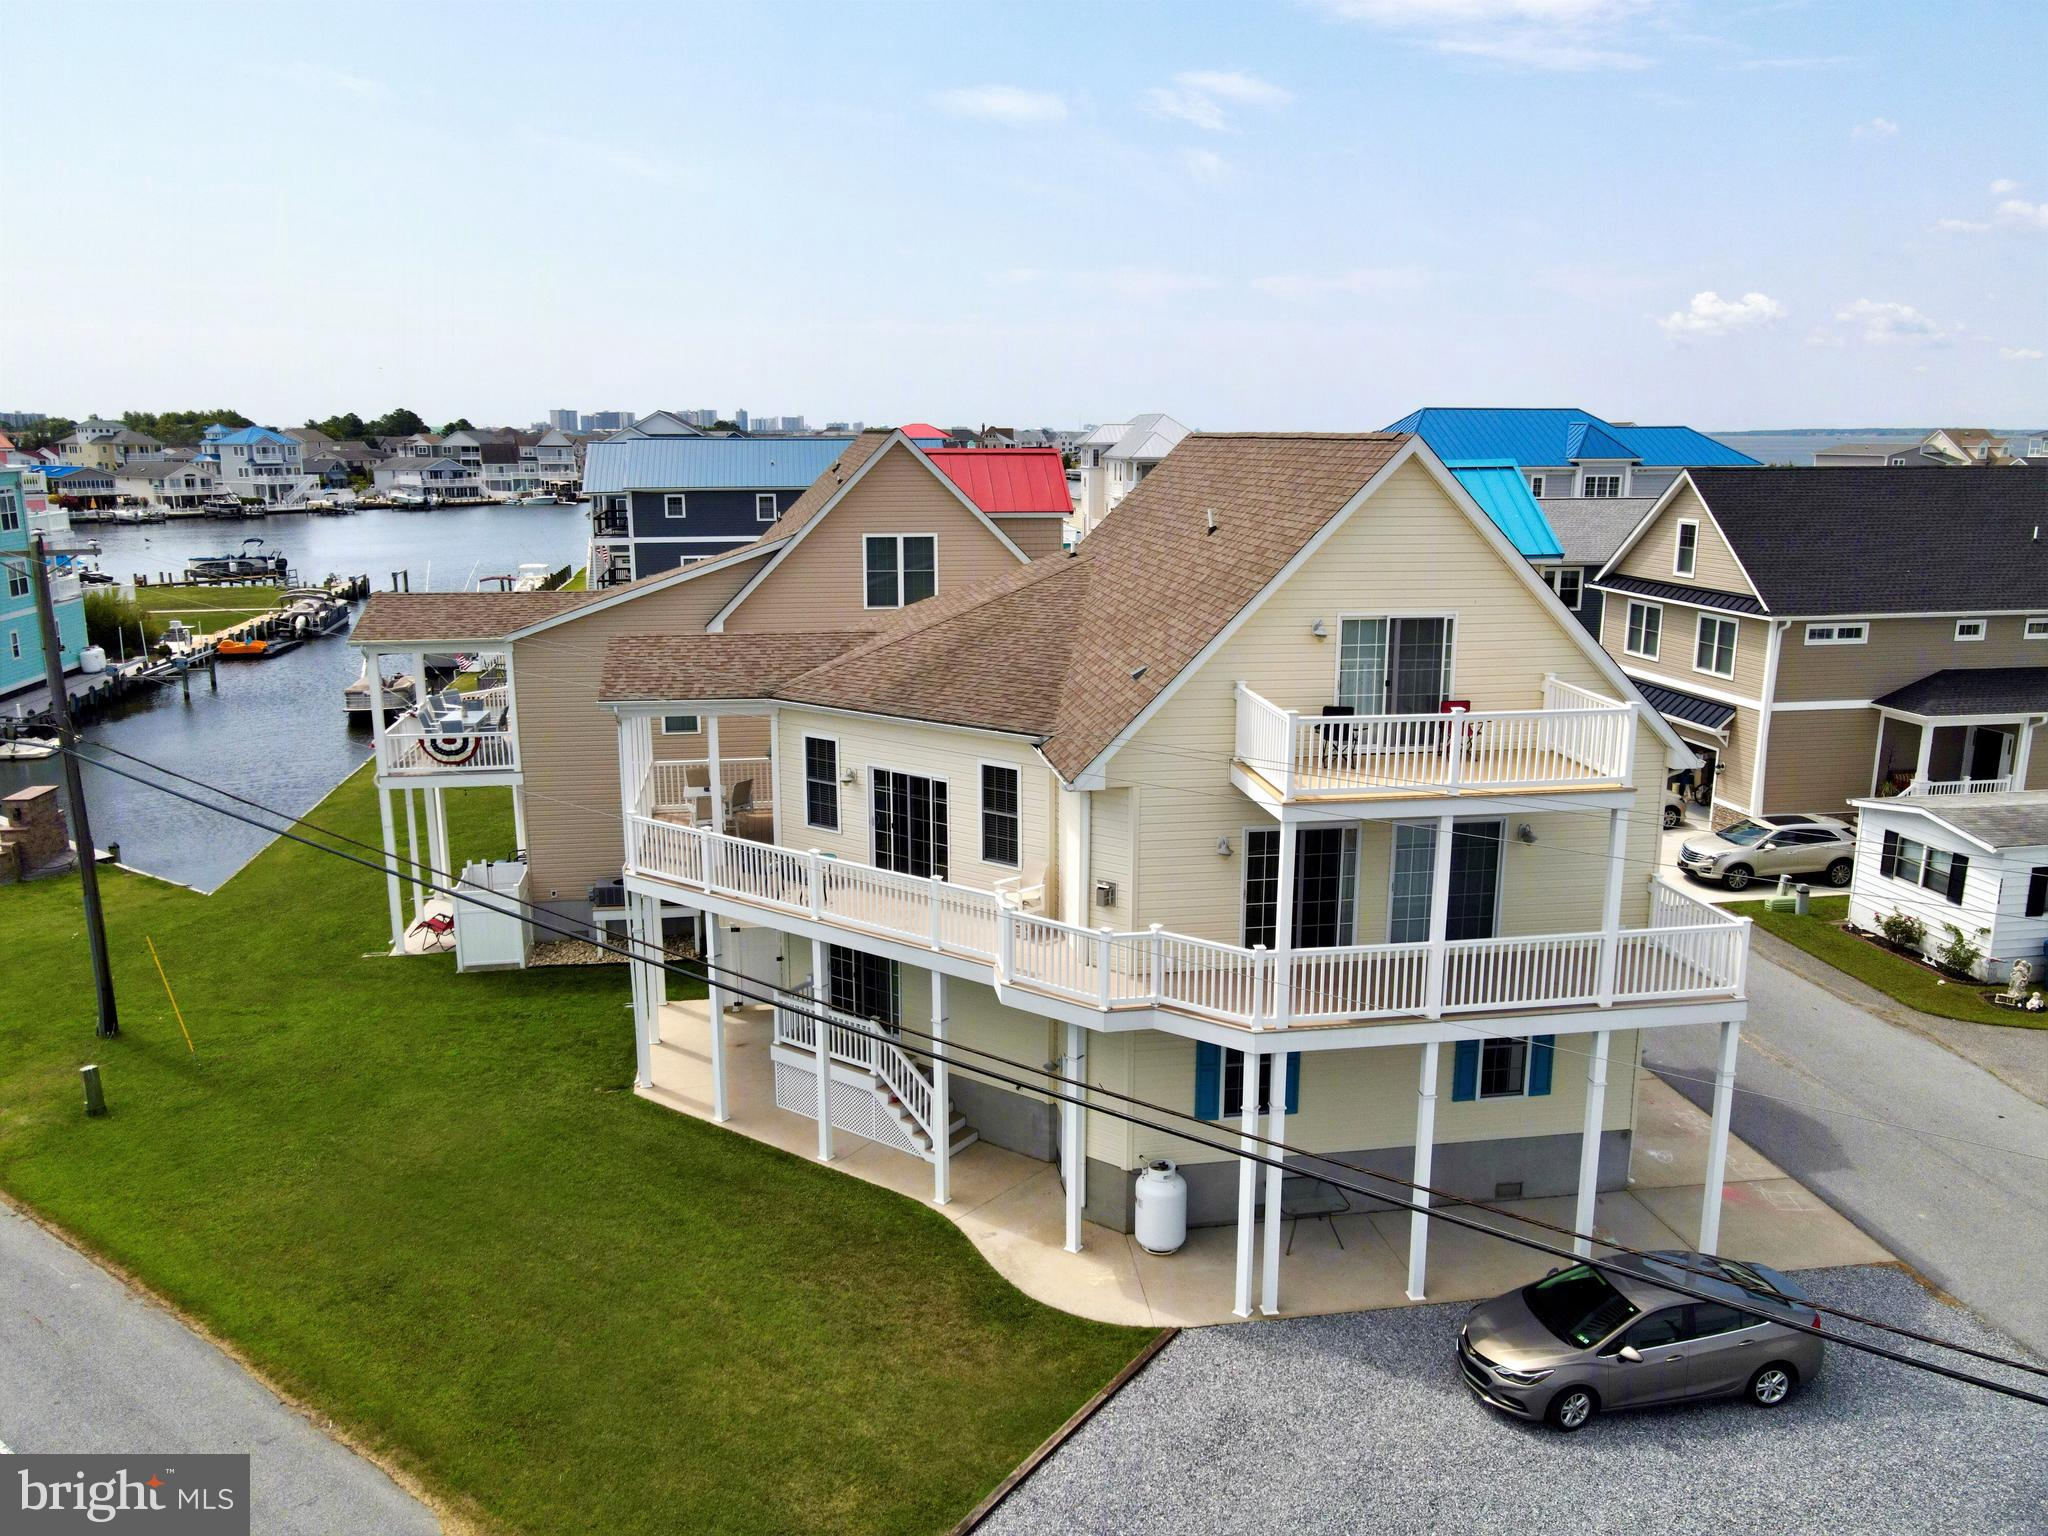 Gorgeous coastal home with impressive bay views located just 1 mile to the pristine wide Fenwick Island beach. This spacious 5 bedroom, 3.5 bath home was designed with the idea that multiple generations would gather, with a great room and kitchen on the main living level and an additional kitchen and living area on the first floor, allowing room for everyone to spread out. Featuring fine finishes such as beautiful hardwood flooring throughout the main living areas, gas fireplace, granite countertops, and stainless steel appliances, this home is ready to be enjoyed or a great investment property with a proven rental history. Enjoy the bay breeze and the water views from multiple decks and porches. Located in the community of Cape Windsor offering a swimming pool, boat ramp, boat storage area, and playground. Boaters can enjoy easy access to the Big Assawoman Bay and everything that Ocean City offers!